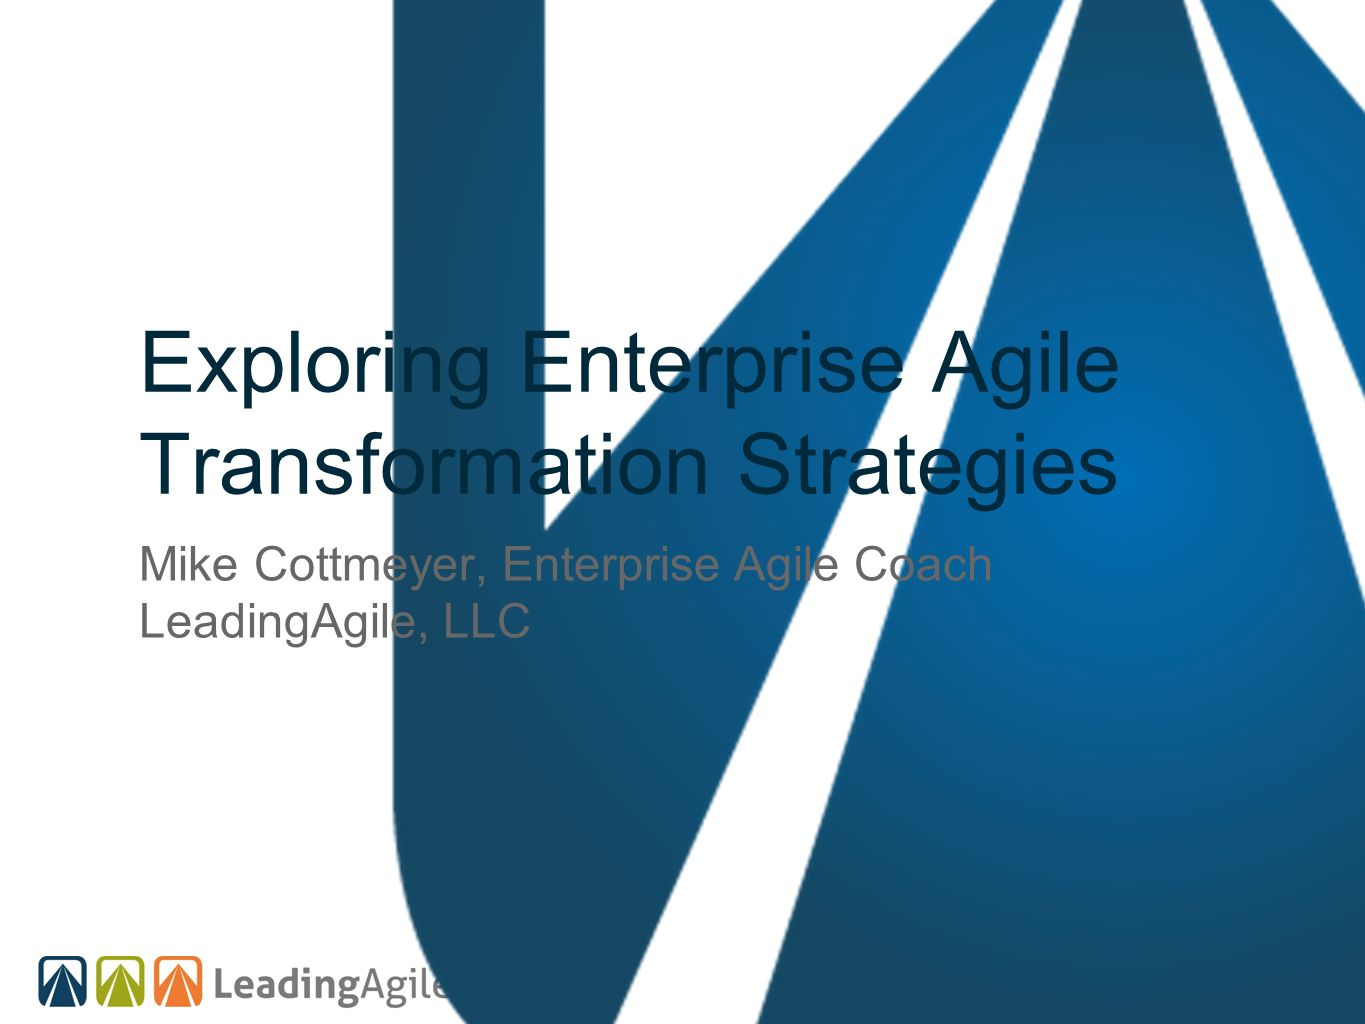 Exploring Enterprise Agile Transformation Strategies Mike Cottmeyer, Enterprise Agile Coach LeadingAgile, LLC